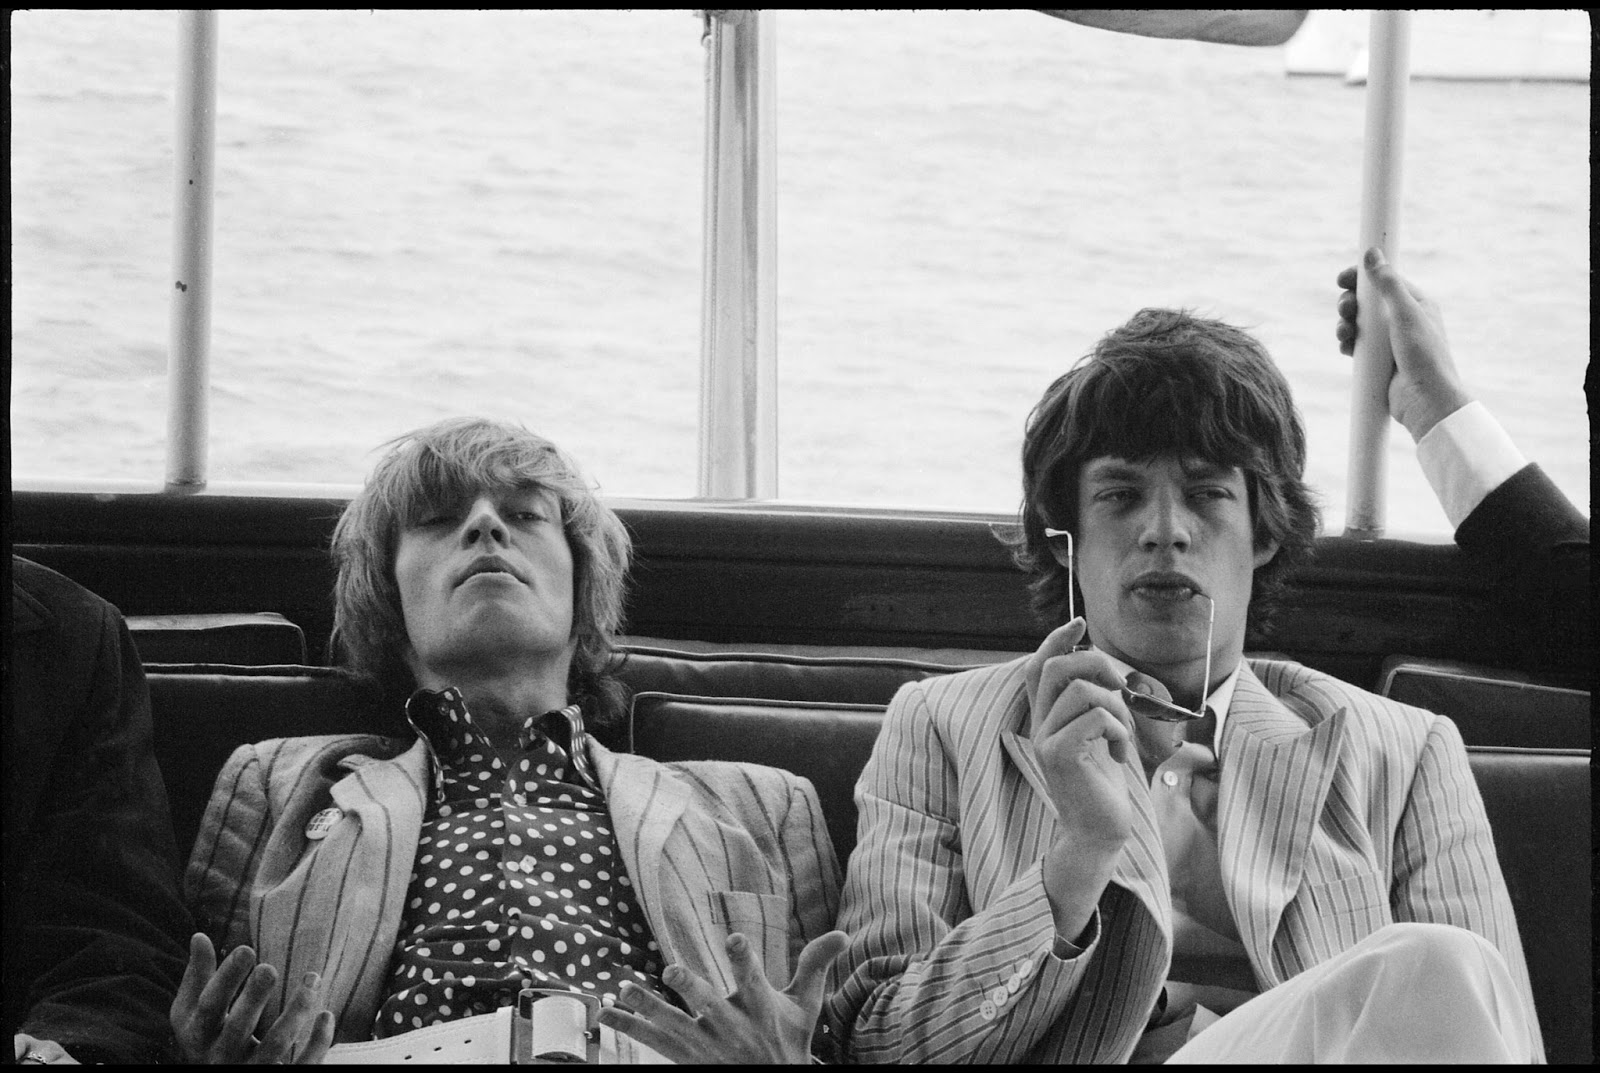 http://3.bp.blogspot.com/-kGMefg2sqOY/UYF23qATJ0I/AAAAAAAAFcI/tgTTME7O4n4/s1600/Brian_Jones_and_Mick_Jagger_New_York_c_1966_Paul_McCartney_Photographer_Linda_McCartney.jpg